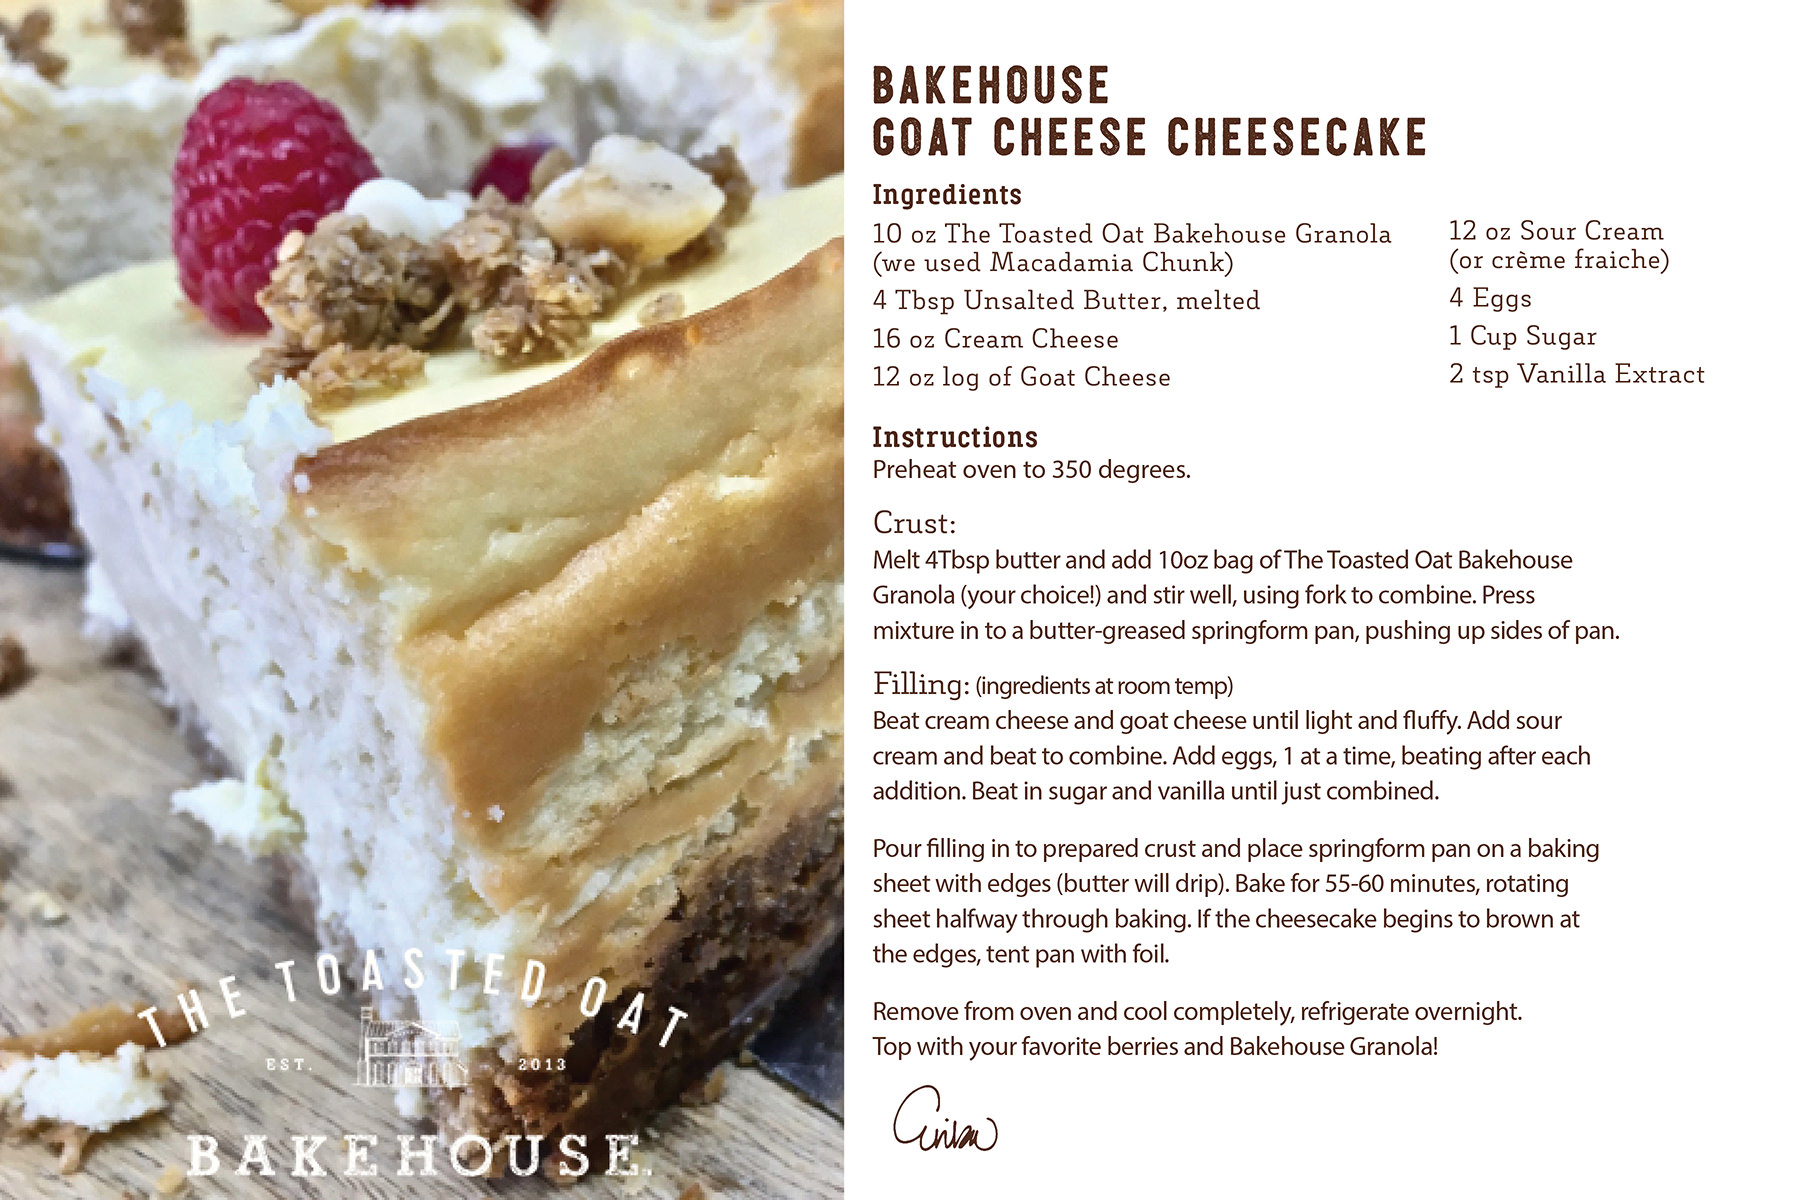 Bakehouse Goat Cheese Cheesecake